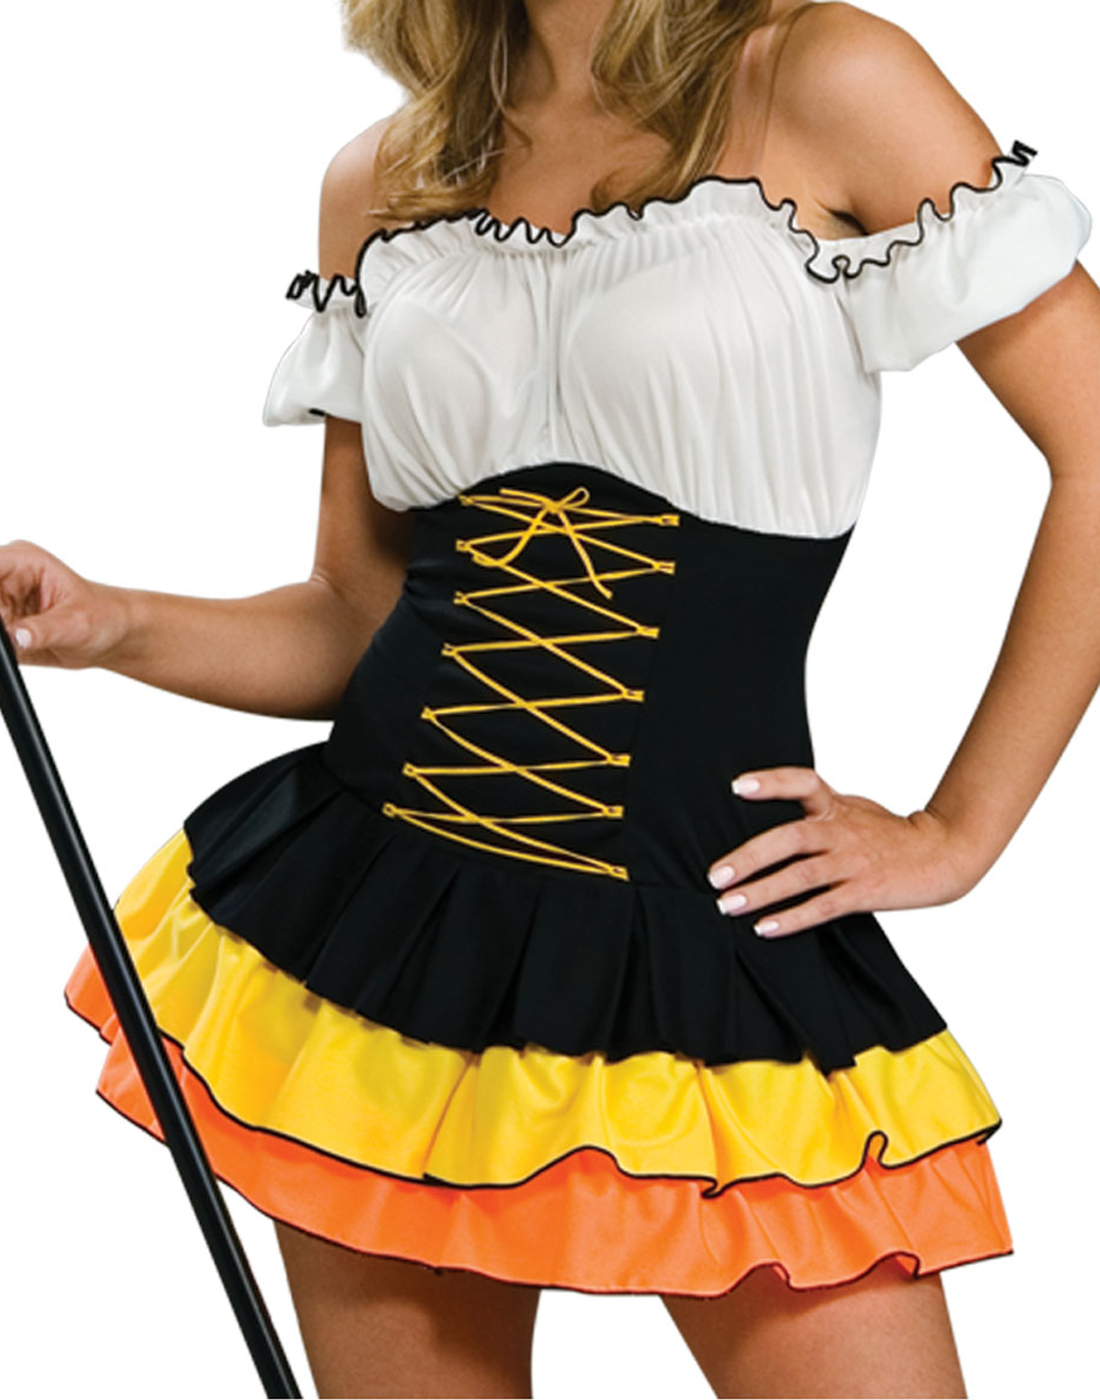 Variants are Adult candy corn costume halloween